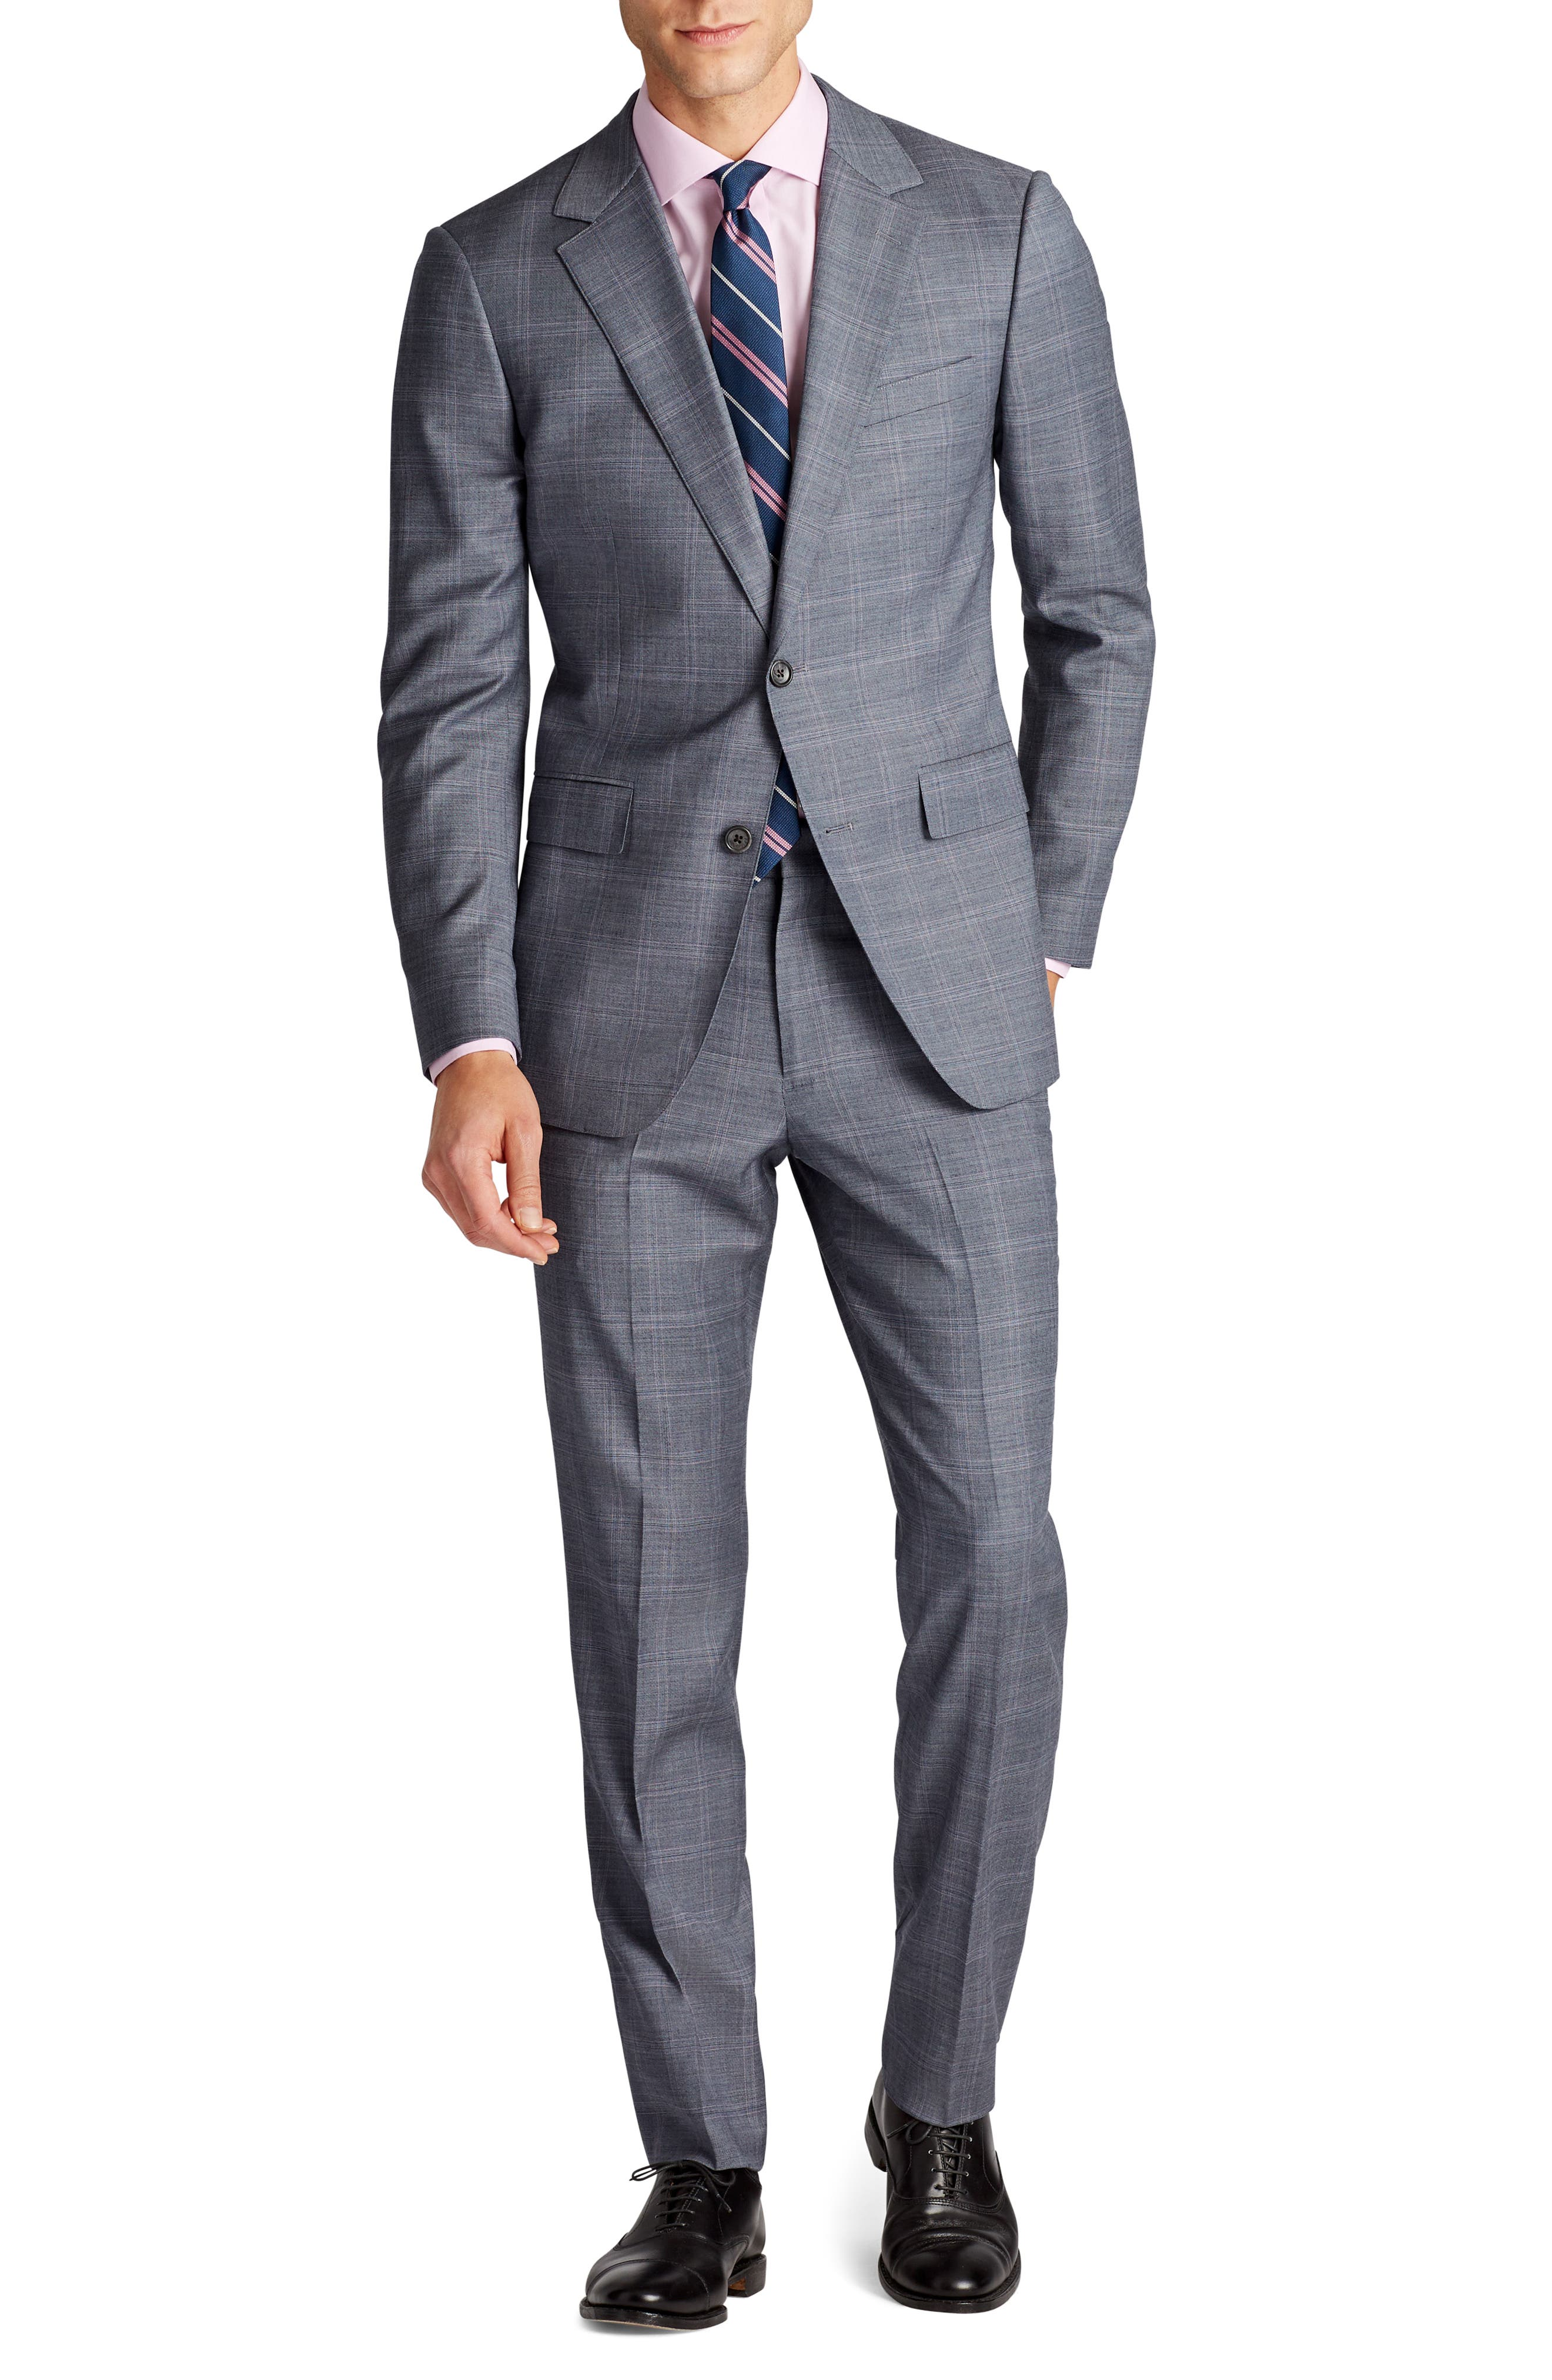 Jetsetter Flat Front Stretch Plaid Wool Trousers,                             Alternate thumbnail 4, color,                             Grey Plaid